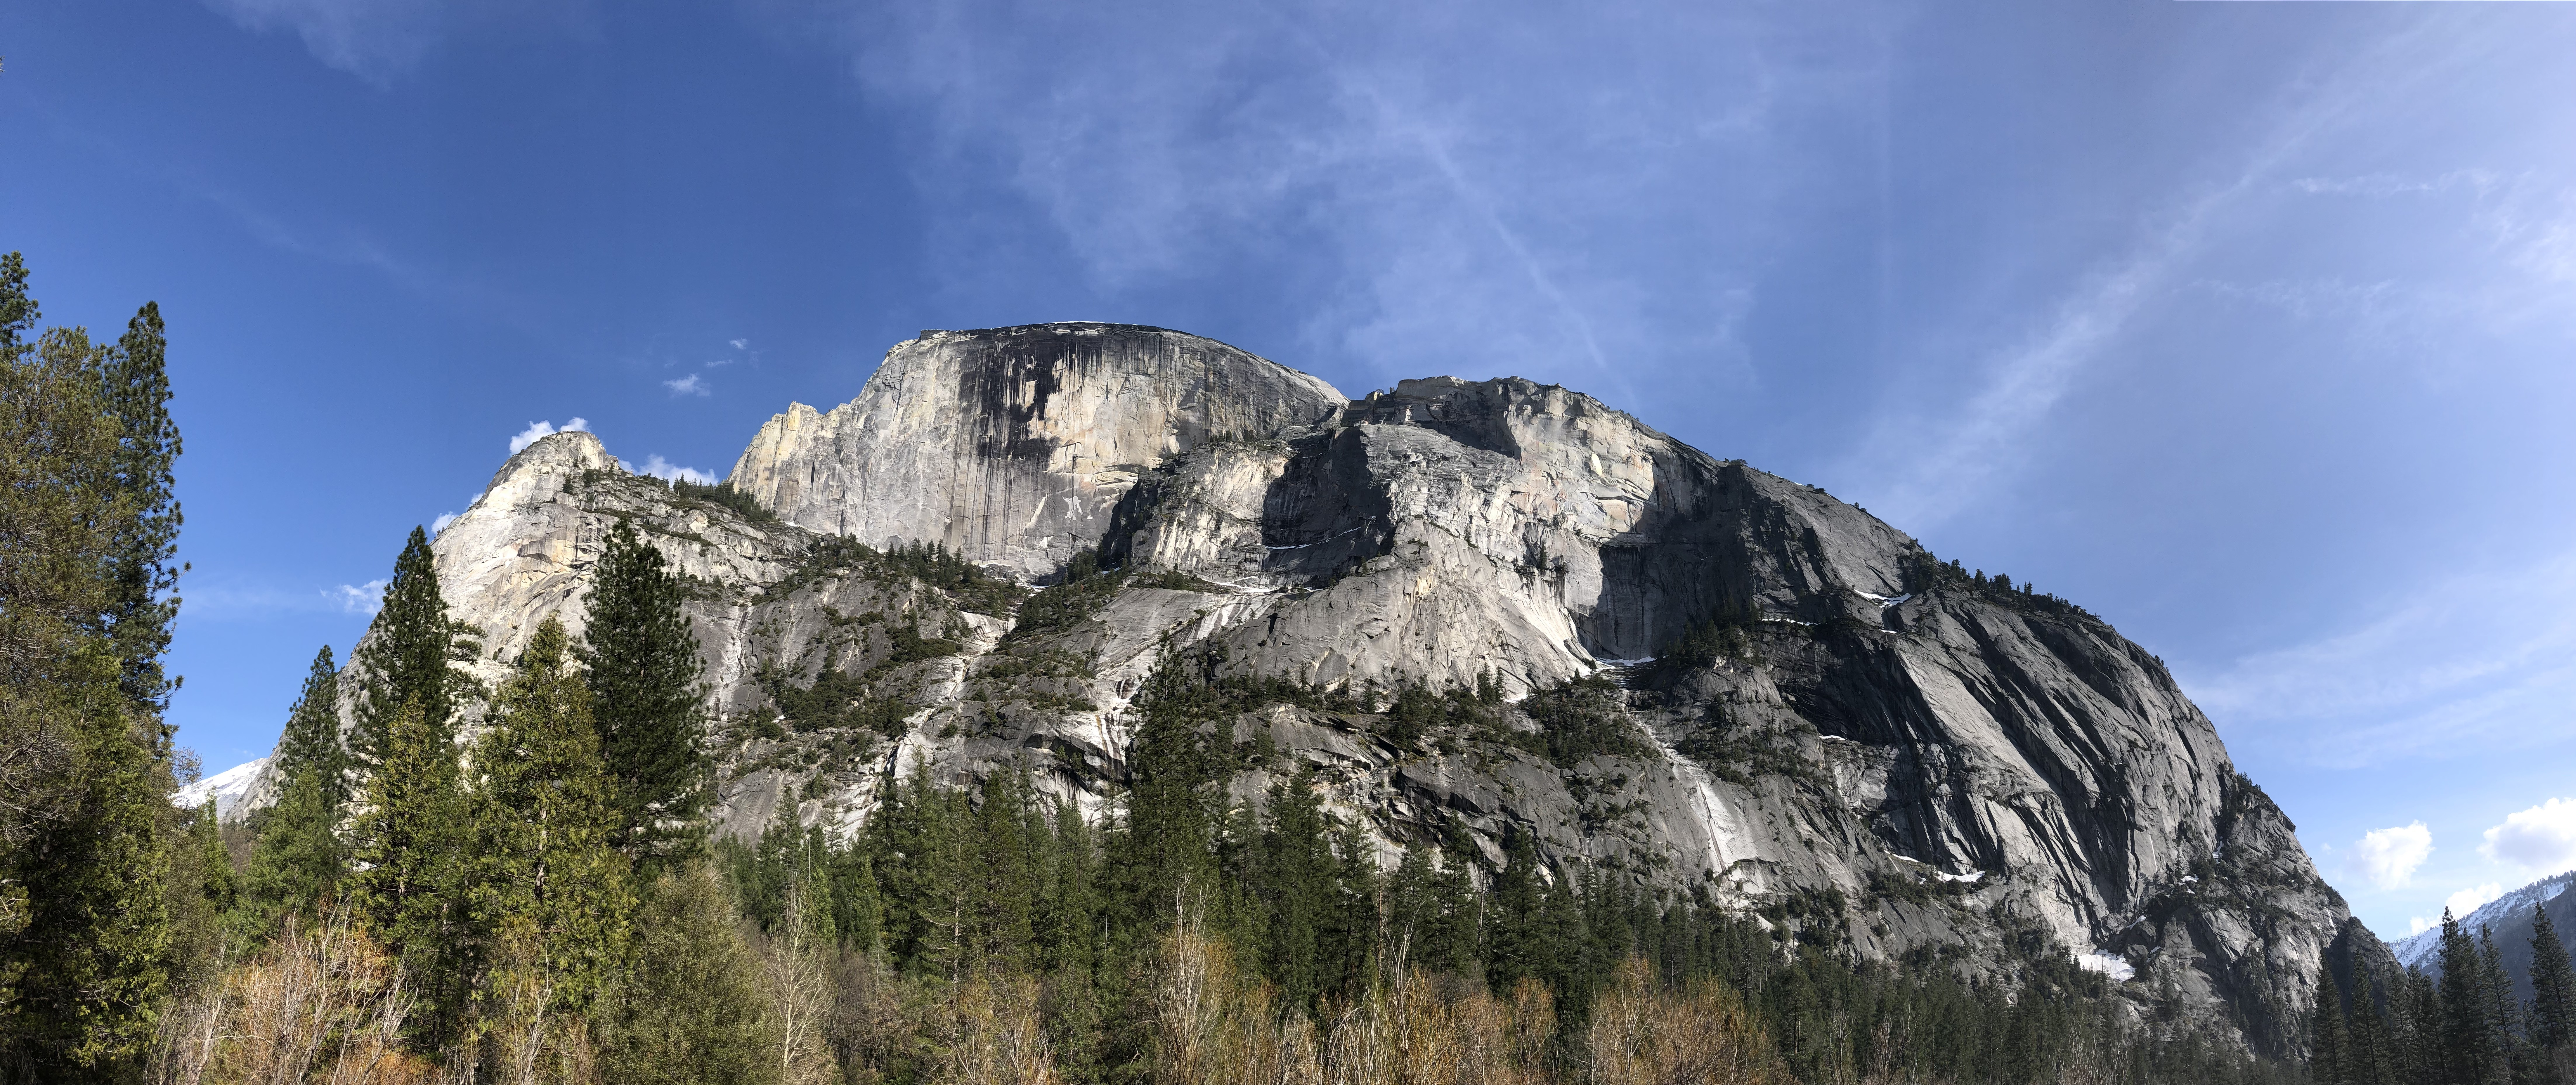 a view of the broad side of Half Dome from Yosemite Valley